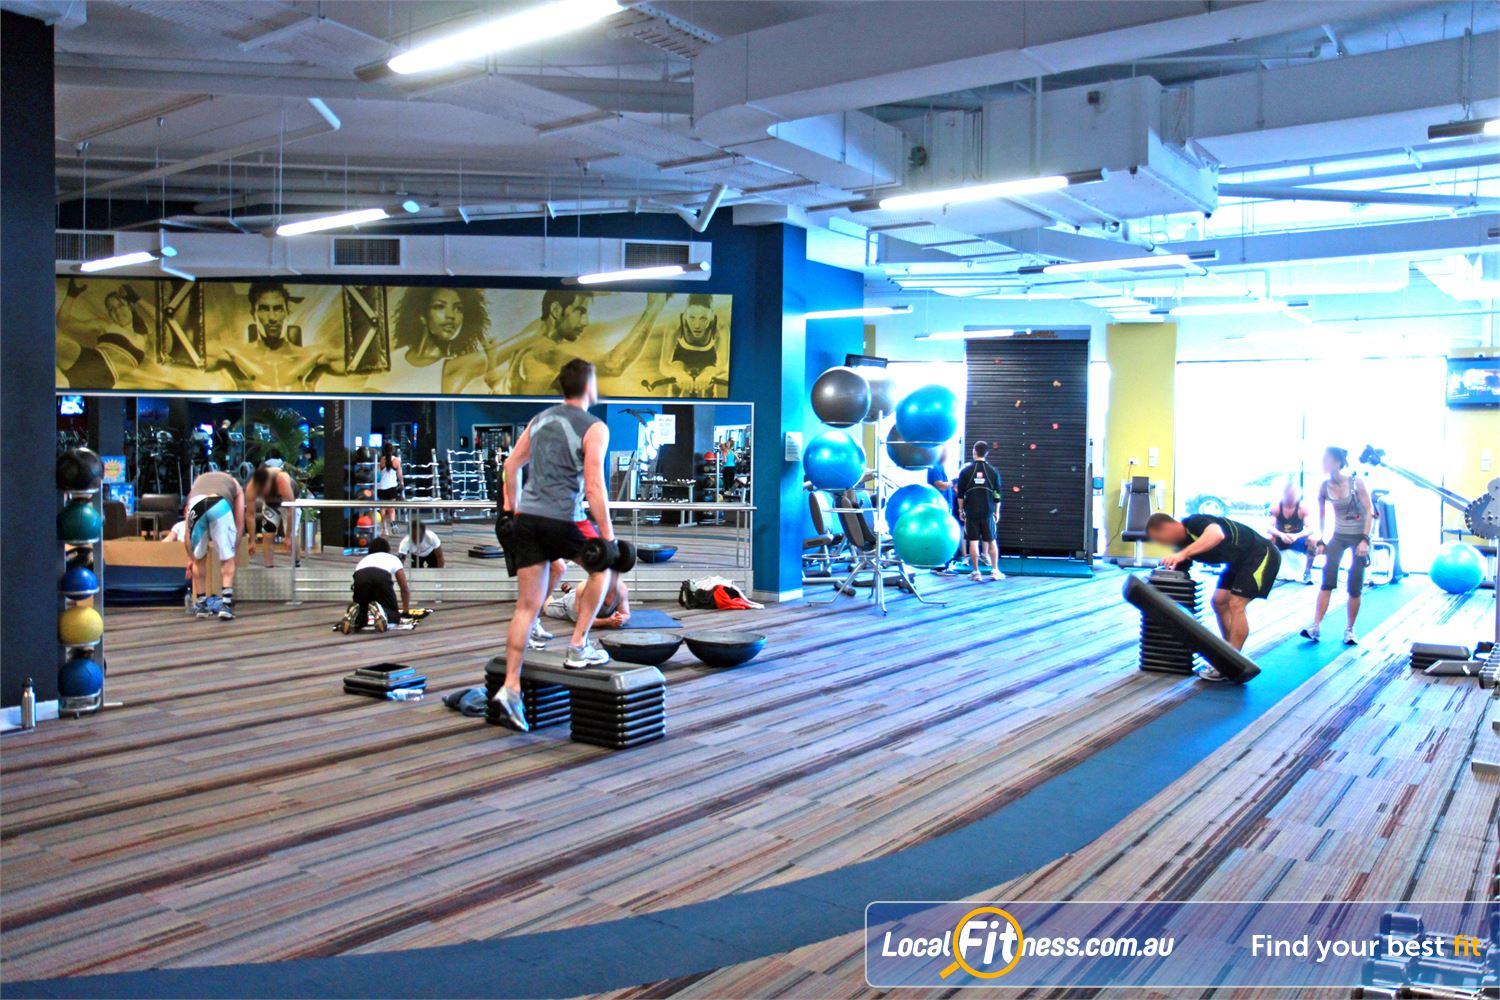 Goodlife Health Clubs Near West Leederville The functional training area at Goodlife Subiaco.